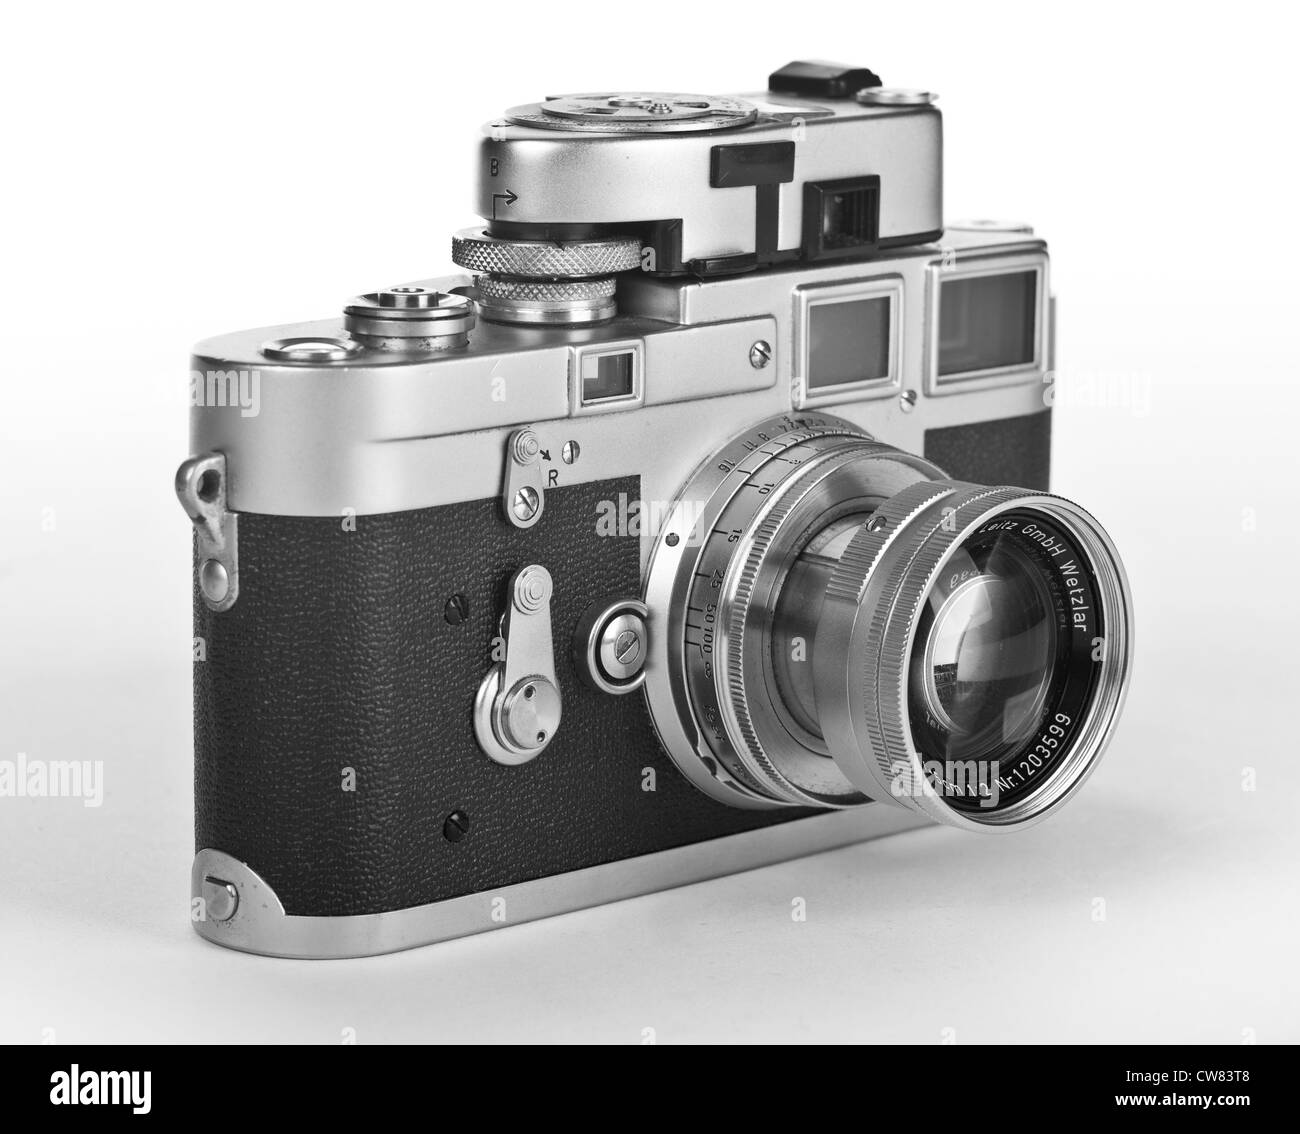 Leica Black and White Stock Photos & Images - Alamy